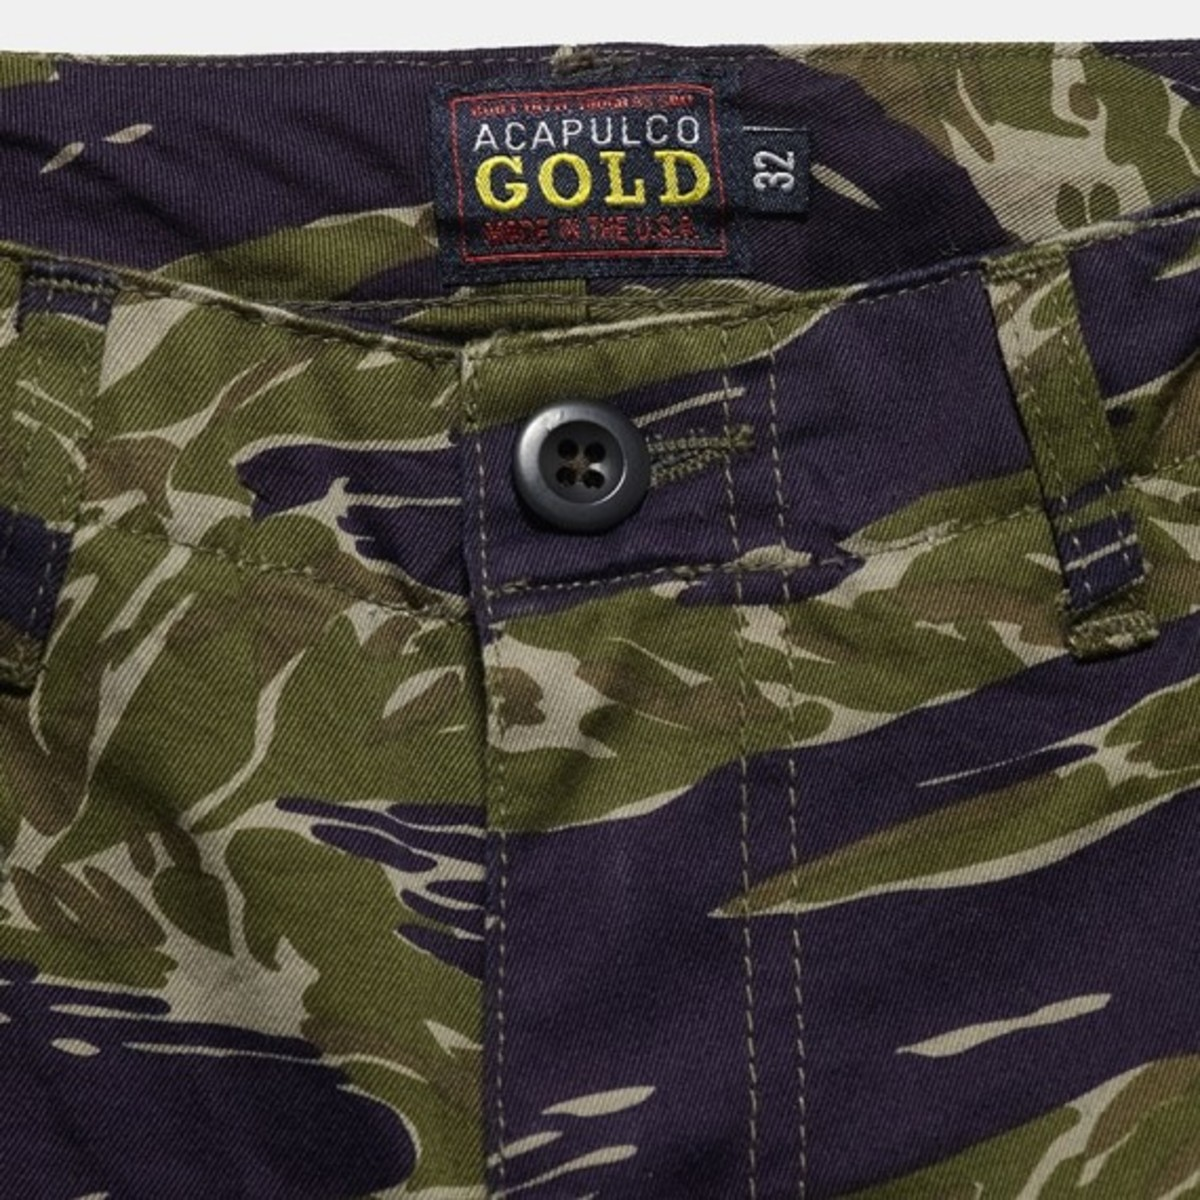 acapulco-gold-spring-2014-collection-delivery-1-55